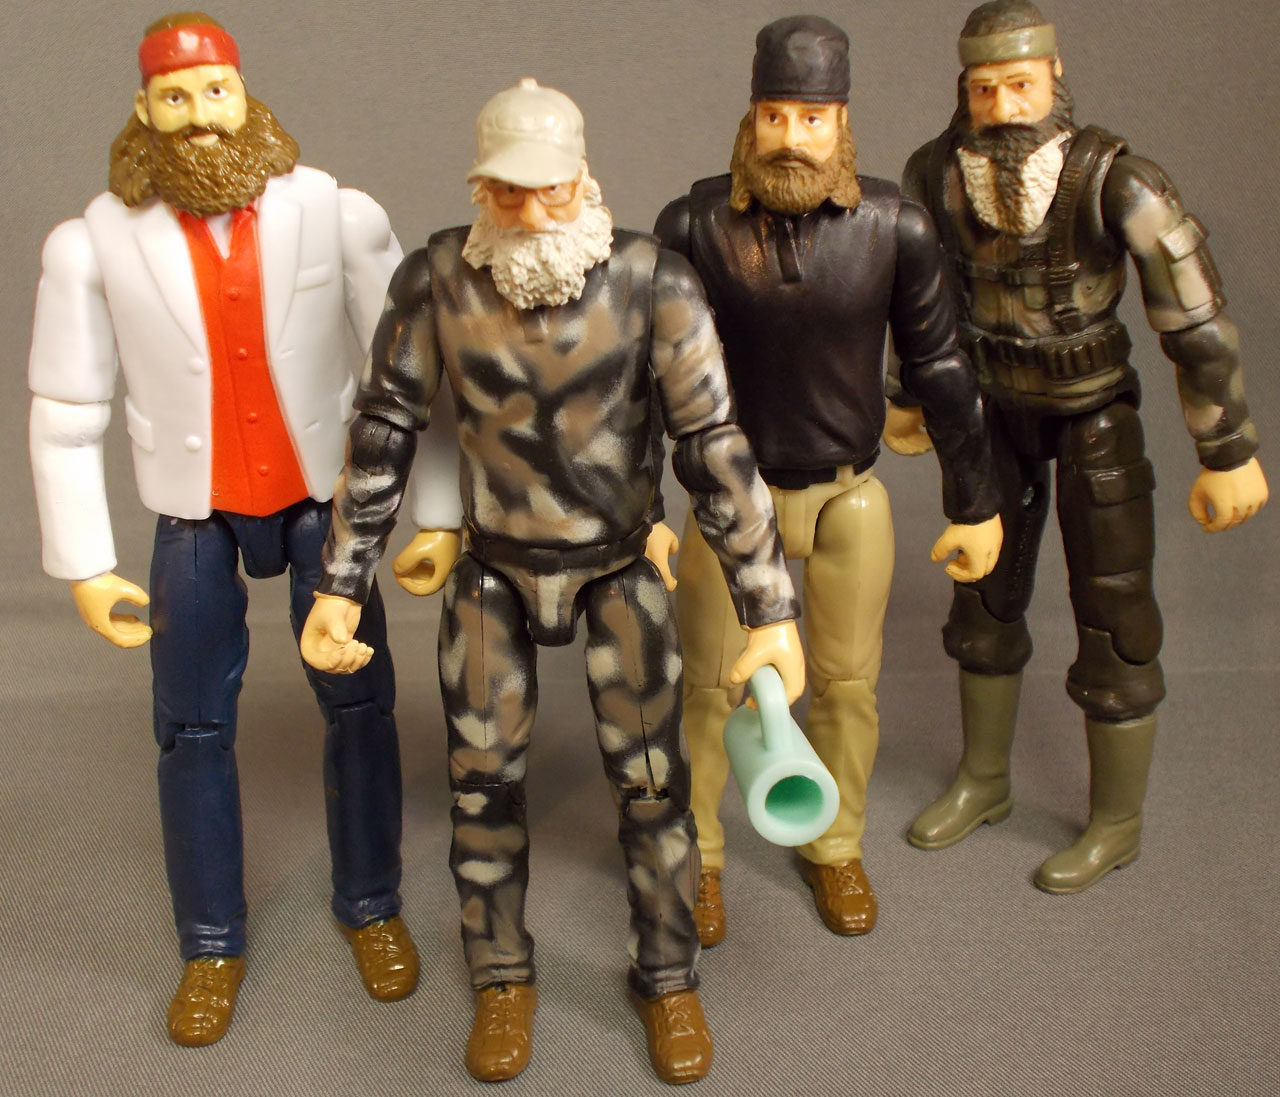 Guest Review > Willie, Jace, Phil, Si (Duck Dynasty/Adventure Wheels, Tree House Kids) by RZ